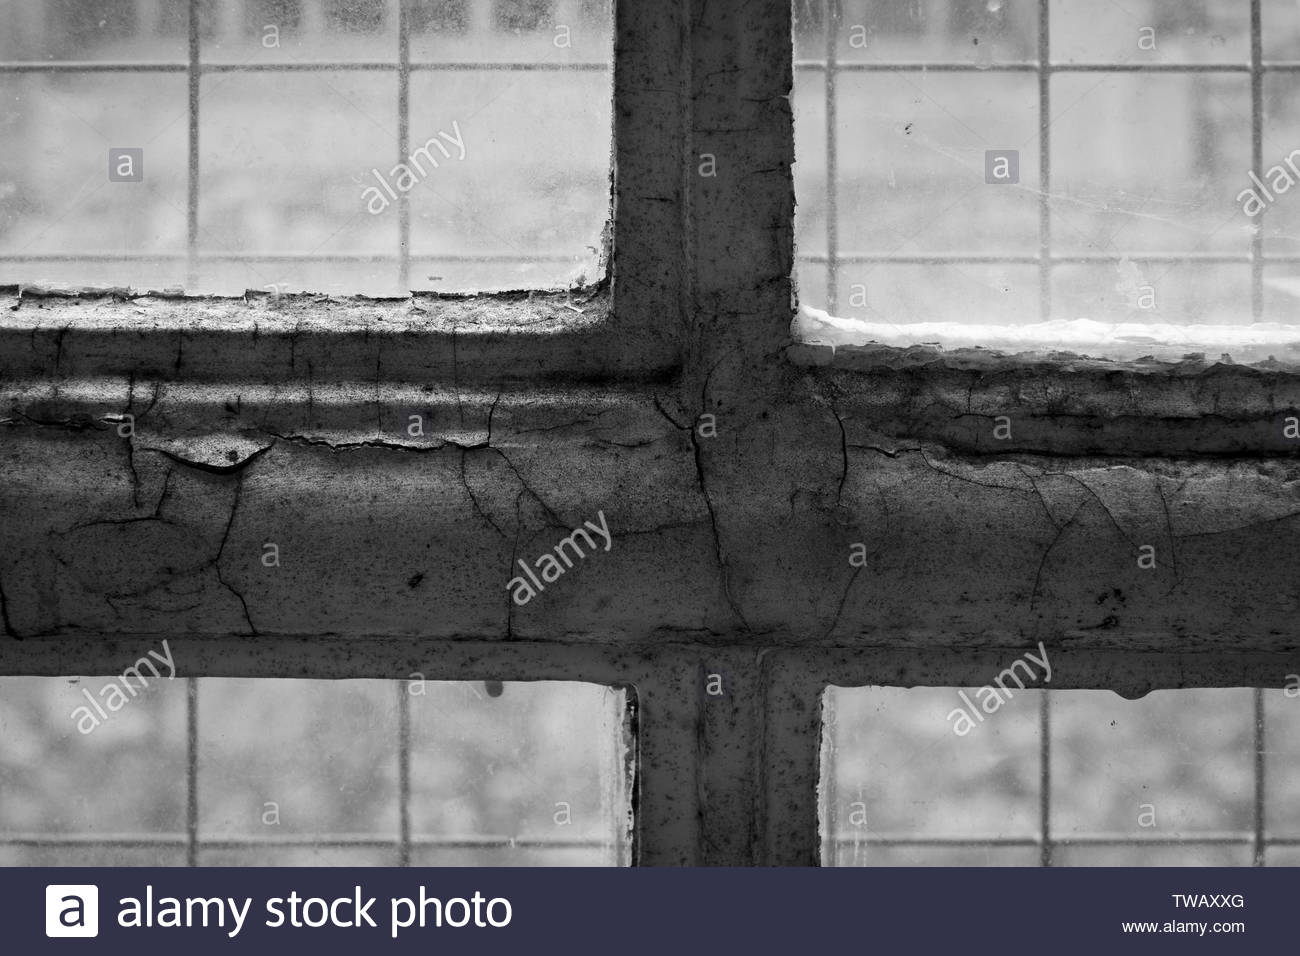 Close up image looking out through a reinforced window of Shepton Mallet Prison, Somerset, England, UK - Stock Image